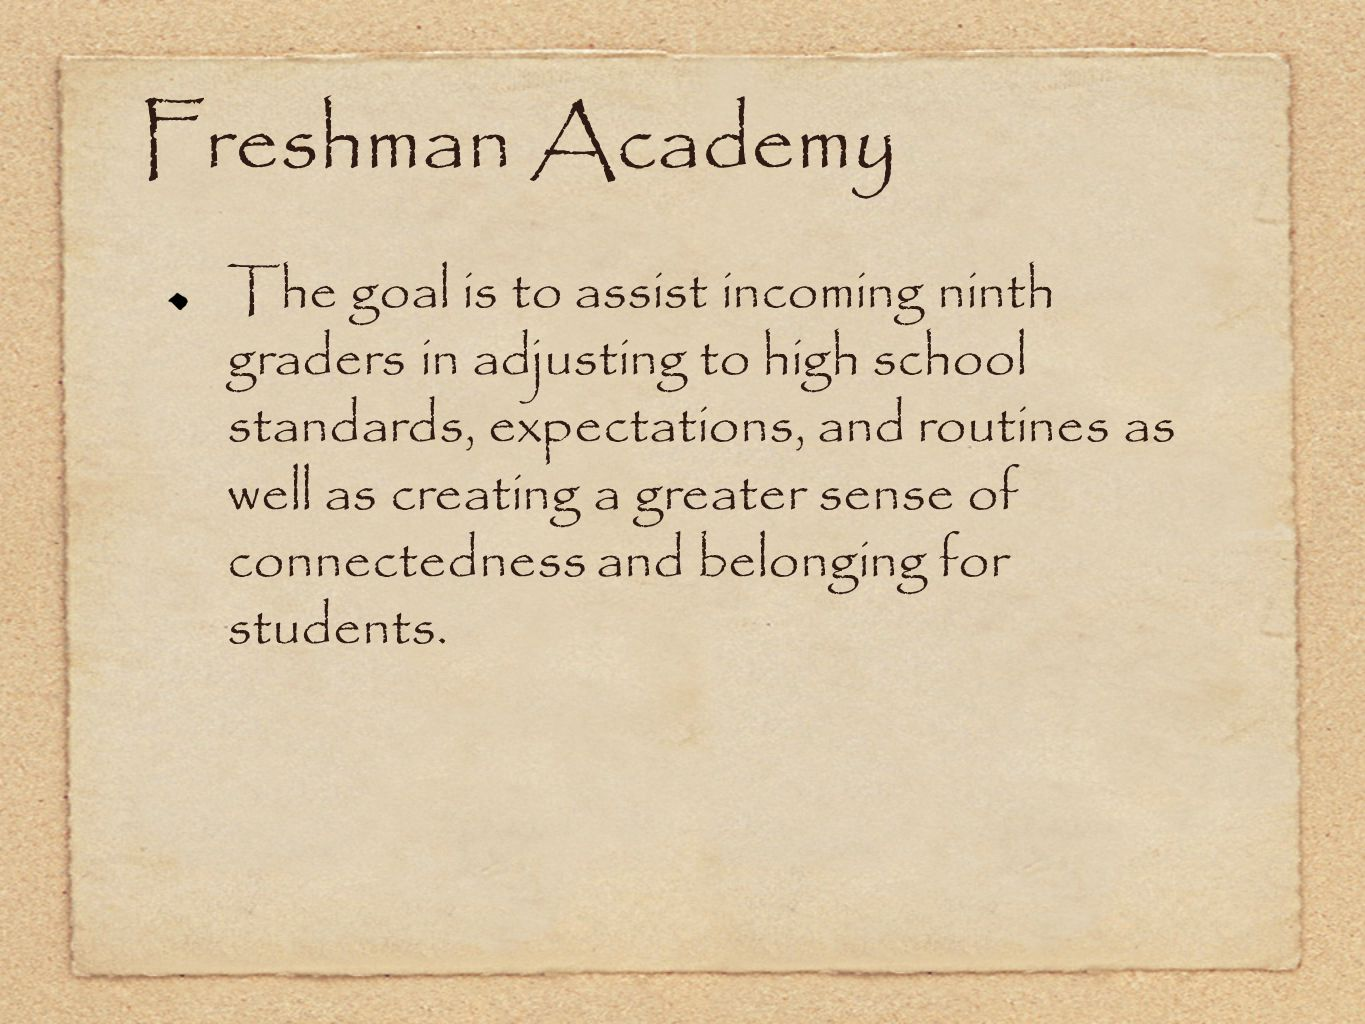 Freshman Academy The goal is to assist incoming ninth graders in adjusting to high school standards, expectations, and routines as well as creating a